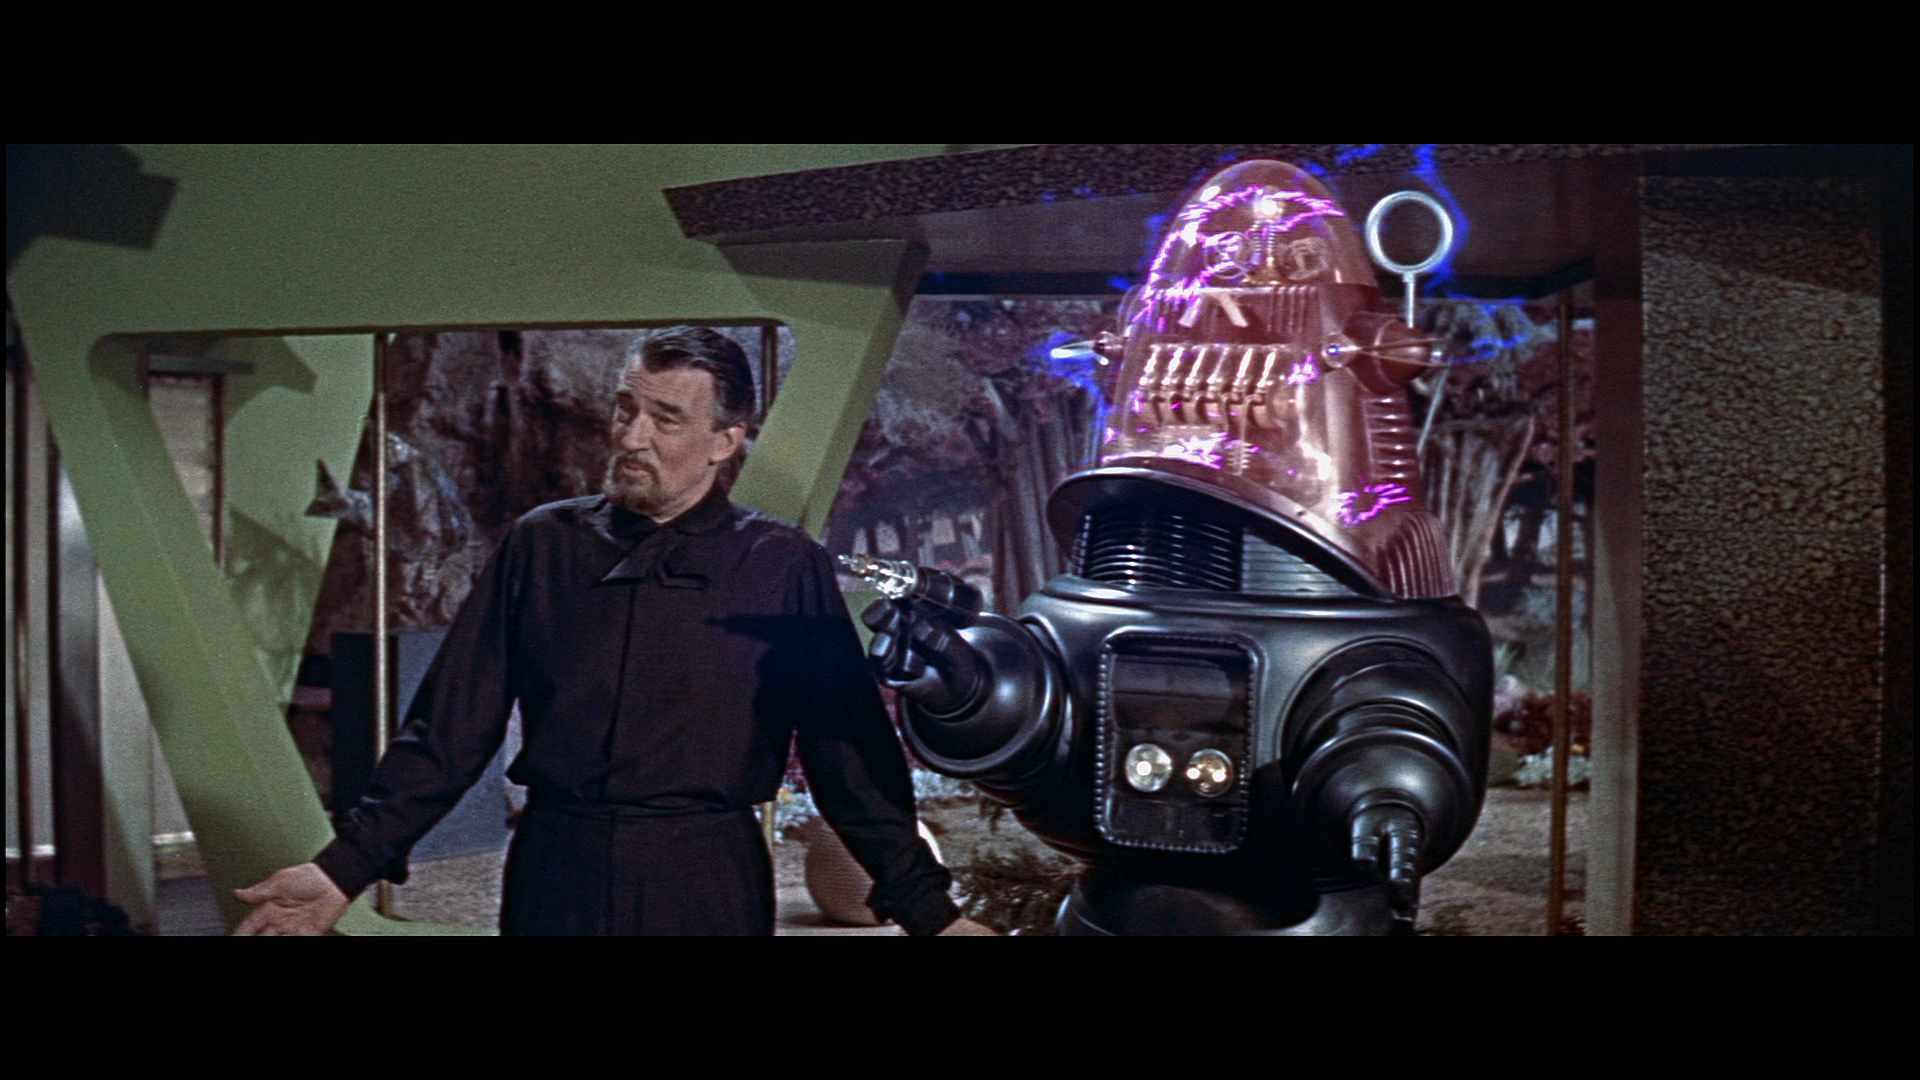 Walter Pidgeon in 1956's Forbidden Planet...maybe having a picture of movie will ease Steve's pain when he looks at rankings.